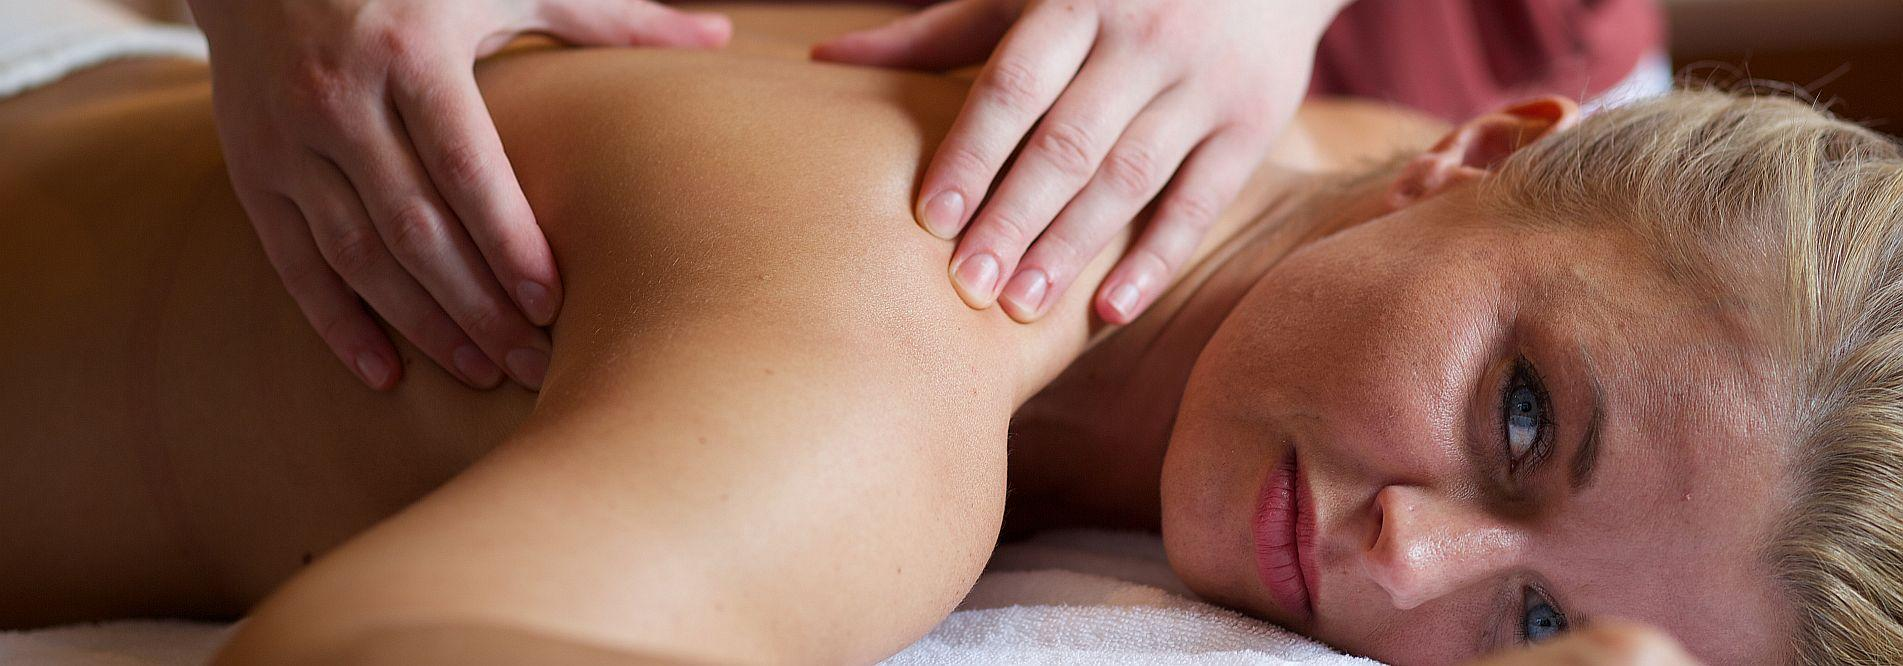 Wellness, cure, and Kneipp treatment in Bad Wörishofen